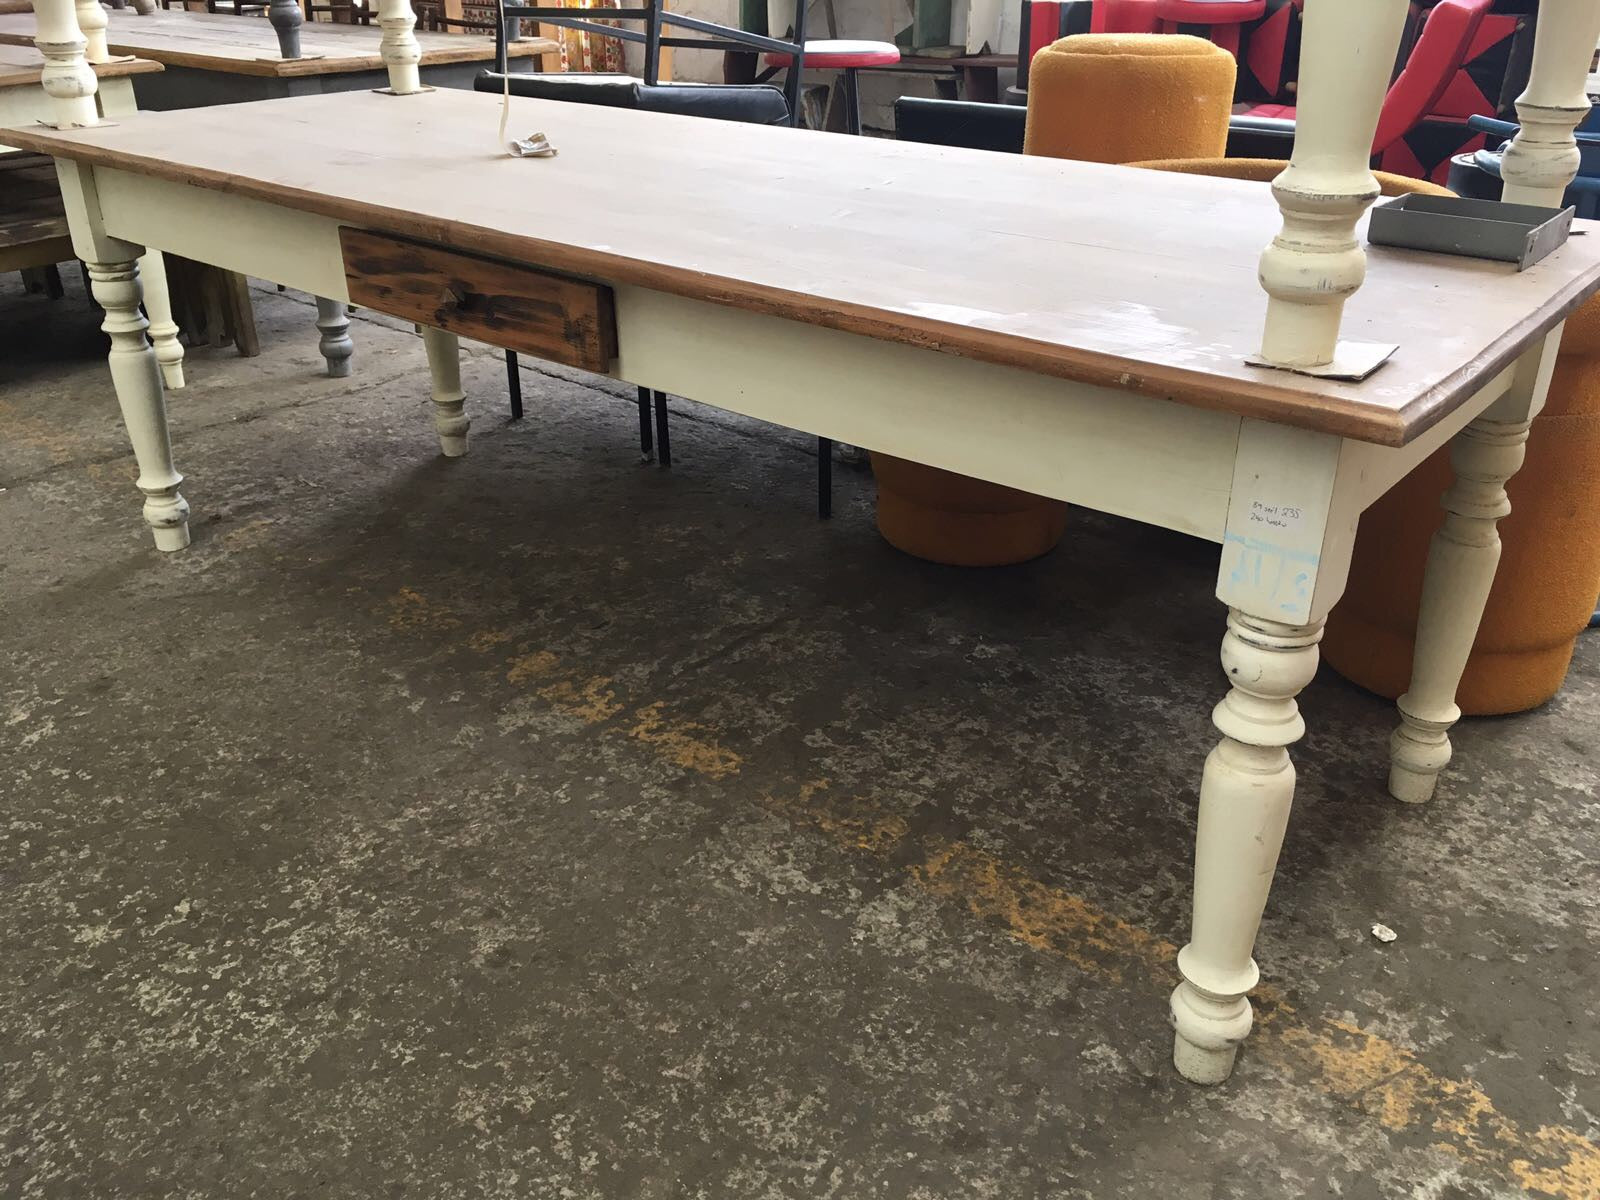 Vintage industrial European kitchen farmhouse dining table 2.2 mt #2102 in Byron